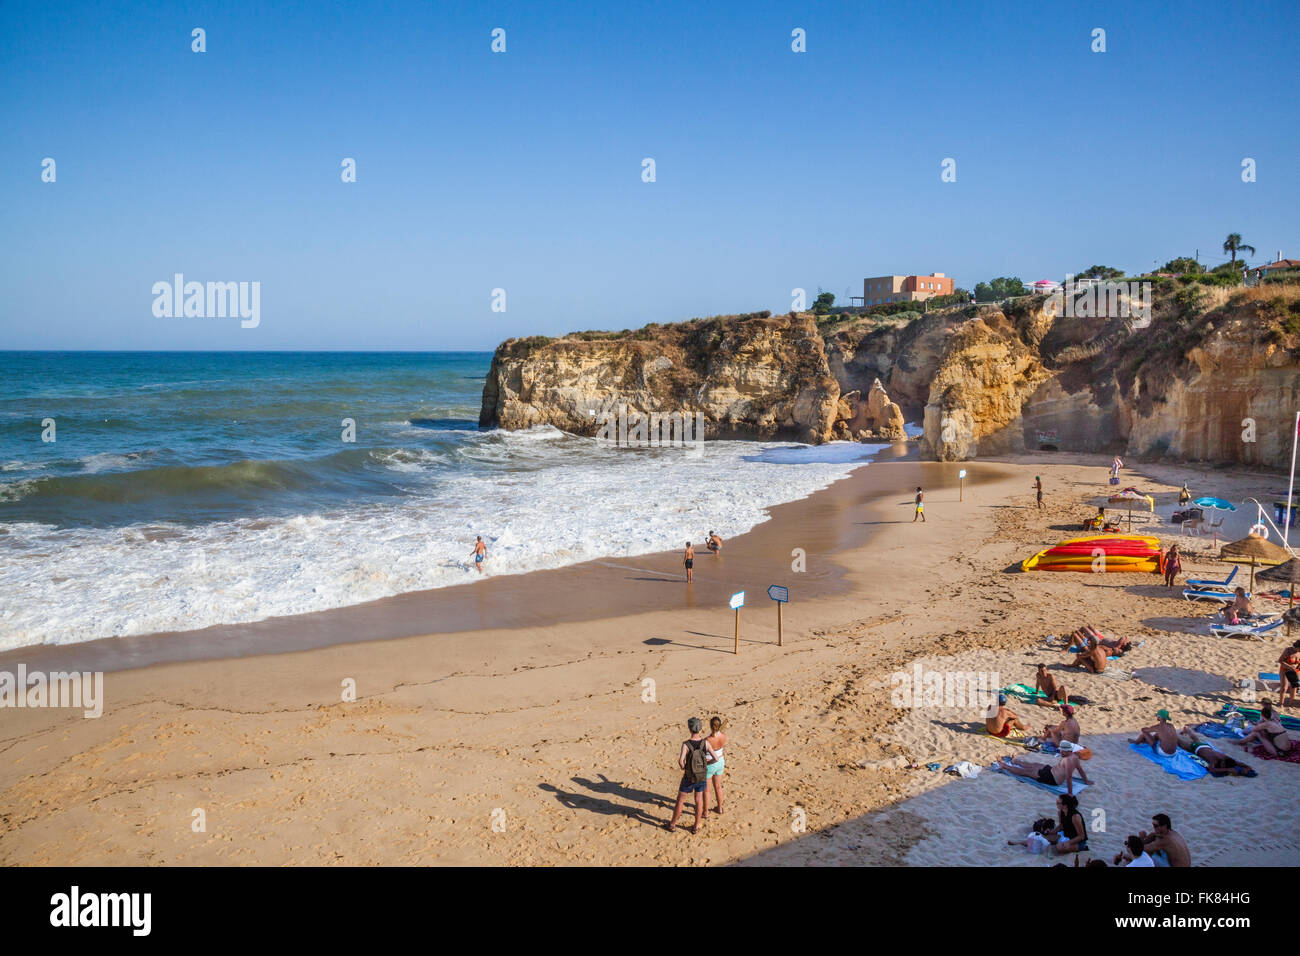 Portugal, Algarve, Lagos, view of Praia da Batata, Batata Beach - Stock Image